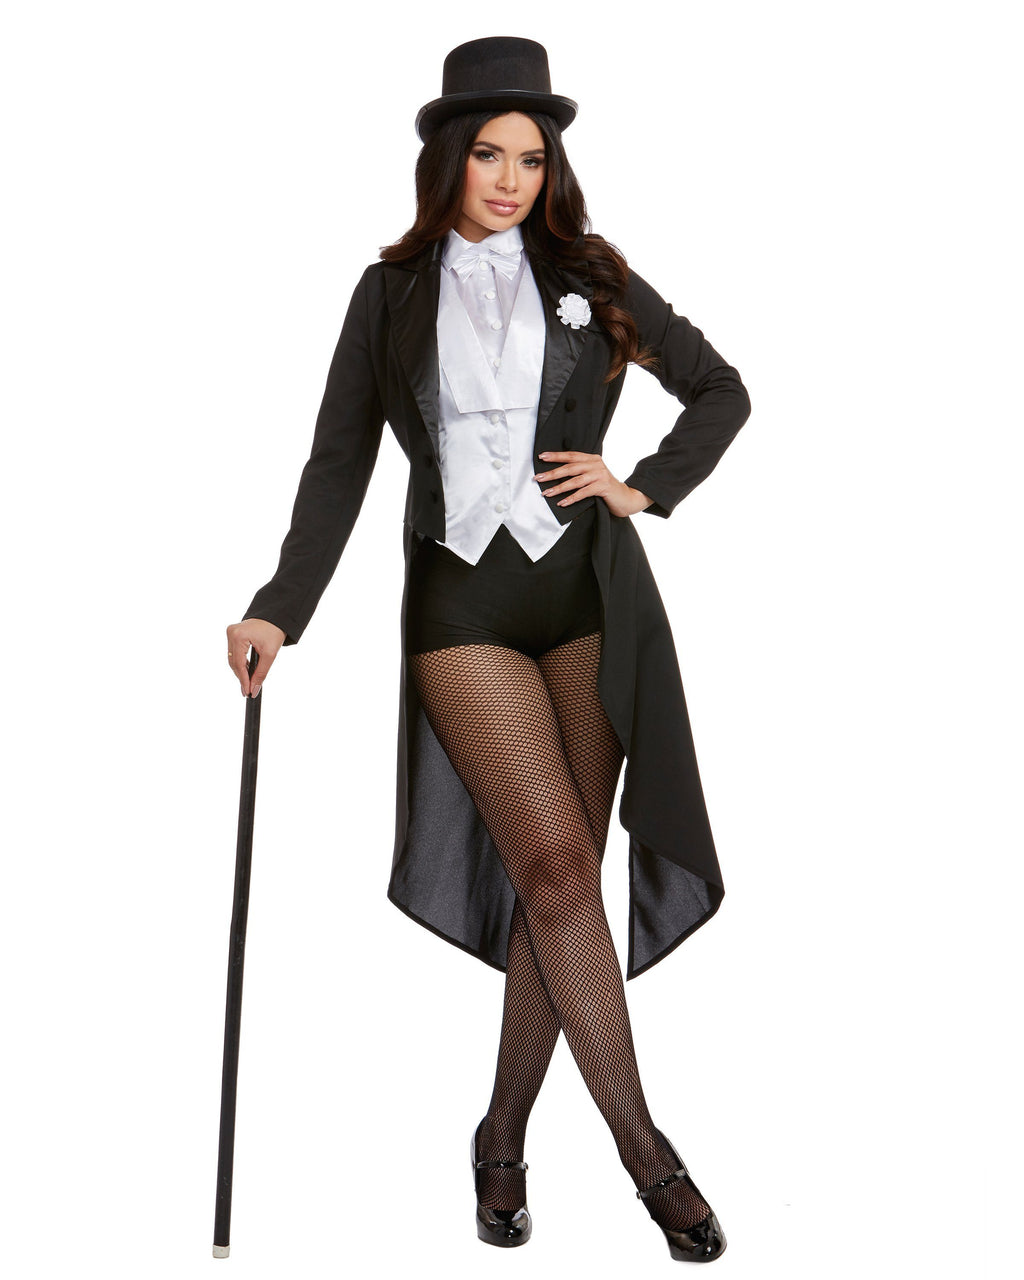 Dames Like Us Women's Costume Dreamgirl Costume